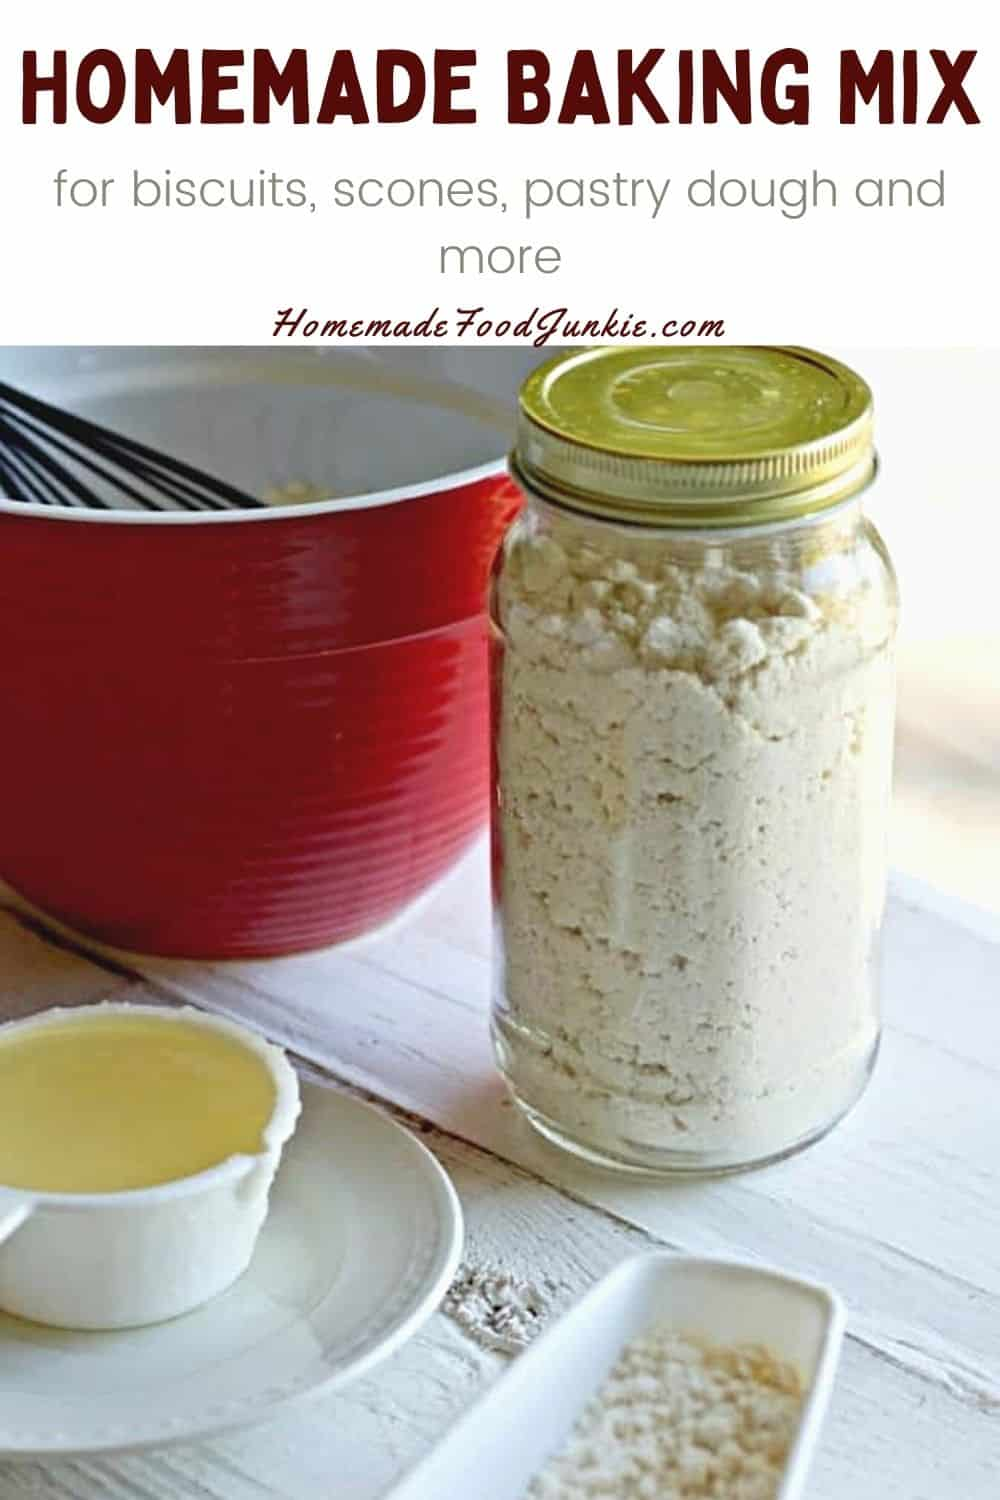 Homemade Baking Mix For Biscuits, Scones, Pastry Dough And More-Pin Image